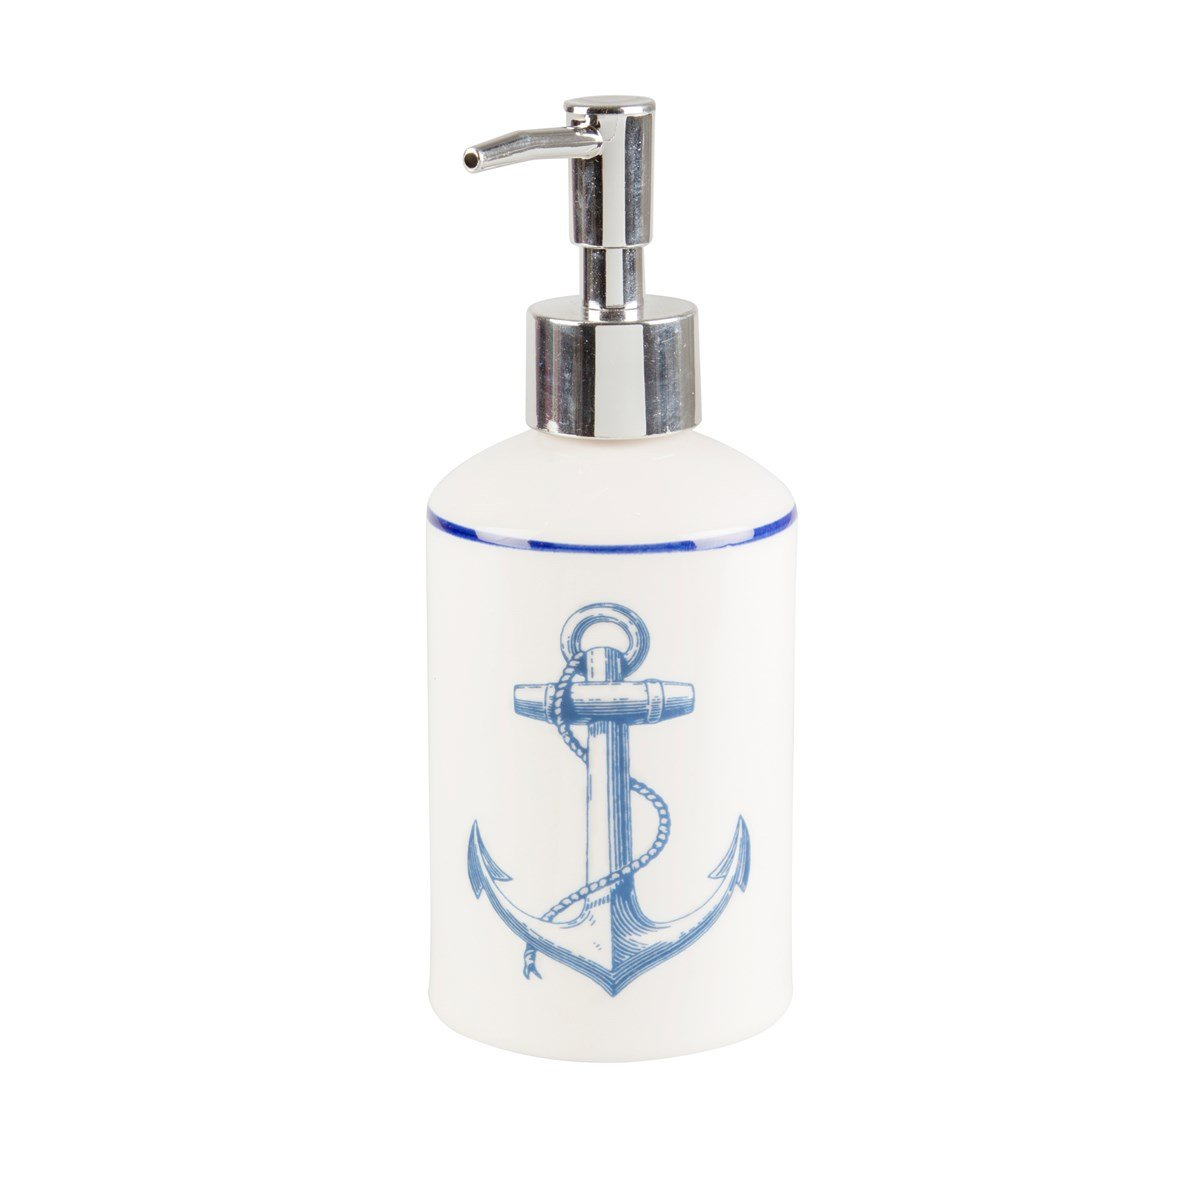 Sass & Belle Nautical Vintage Sea Collection Blue & White Ceramic Anchor Soap or Lotion Dispenser RJB Stone